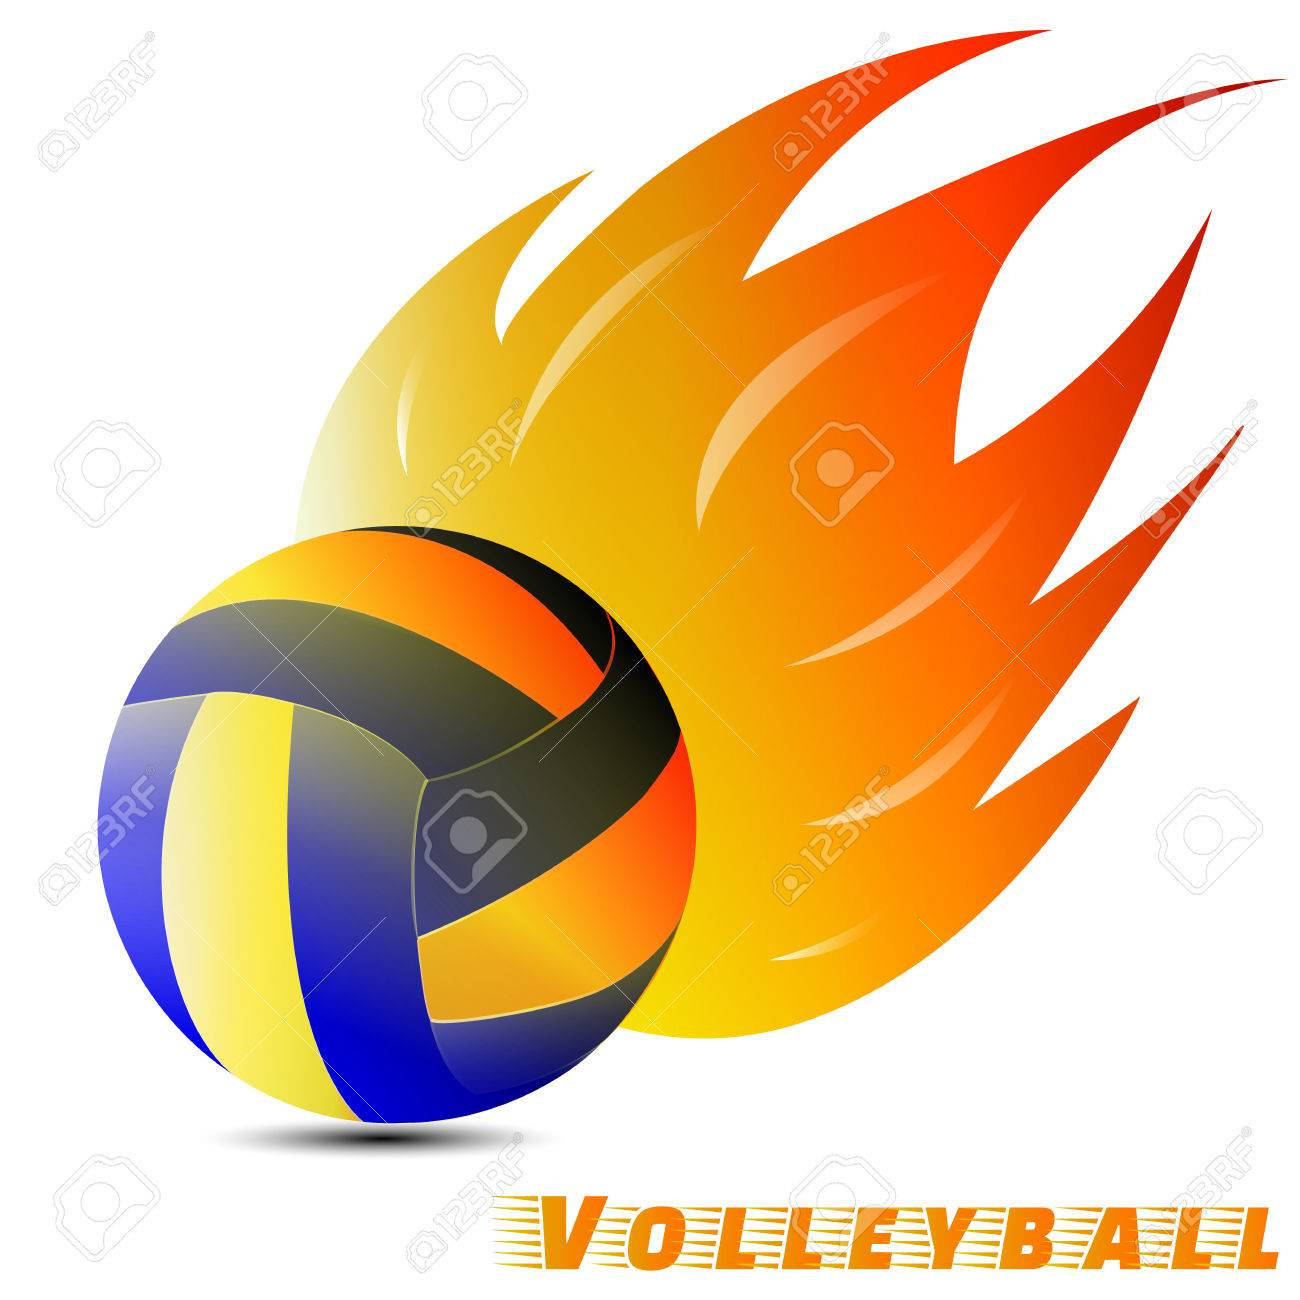 Volleyball Ball With Red Orange Yellow Tone Of The Fire In White Royalty Free Cliparts Vectors And Stock Illustration Image 78532900